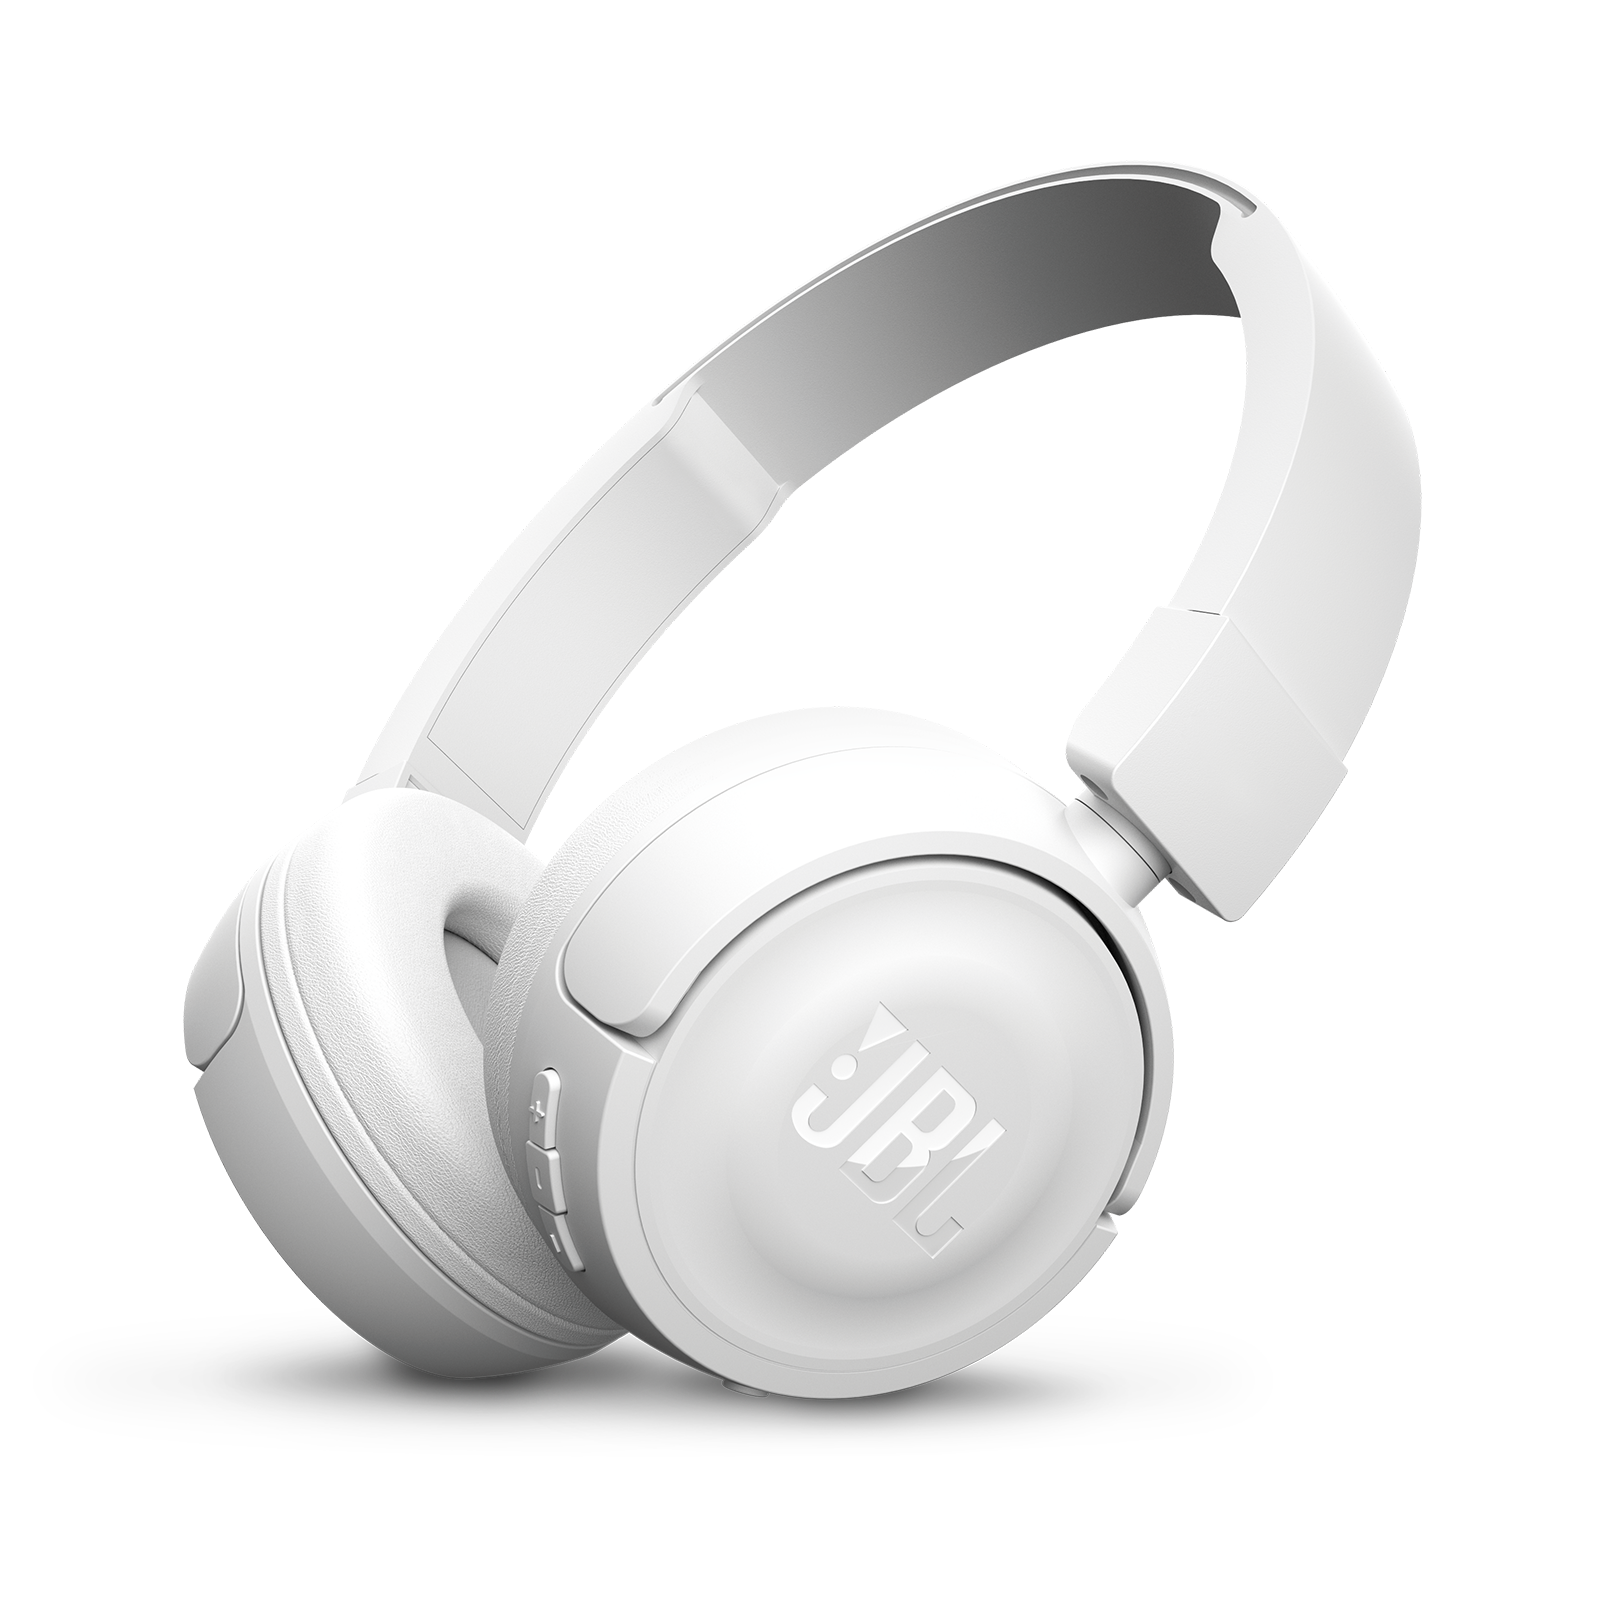 JBL Harman Bluetooth Koptelefoon On Ear Vouwbaar, Headset Lux-wit